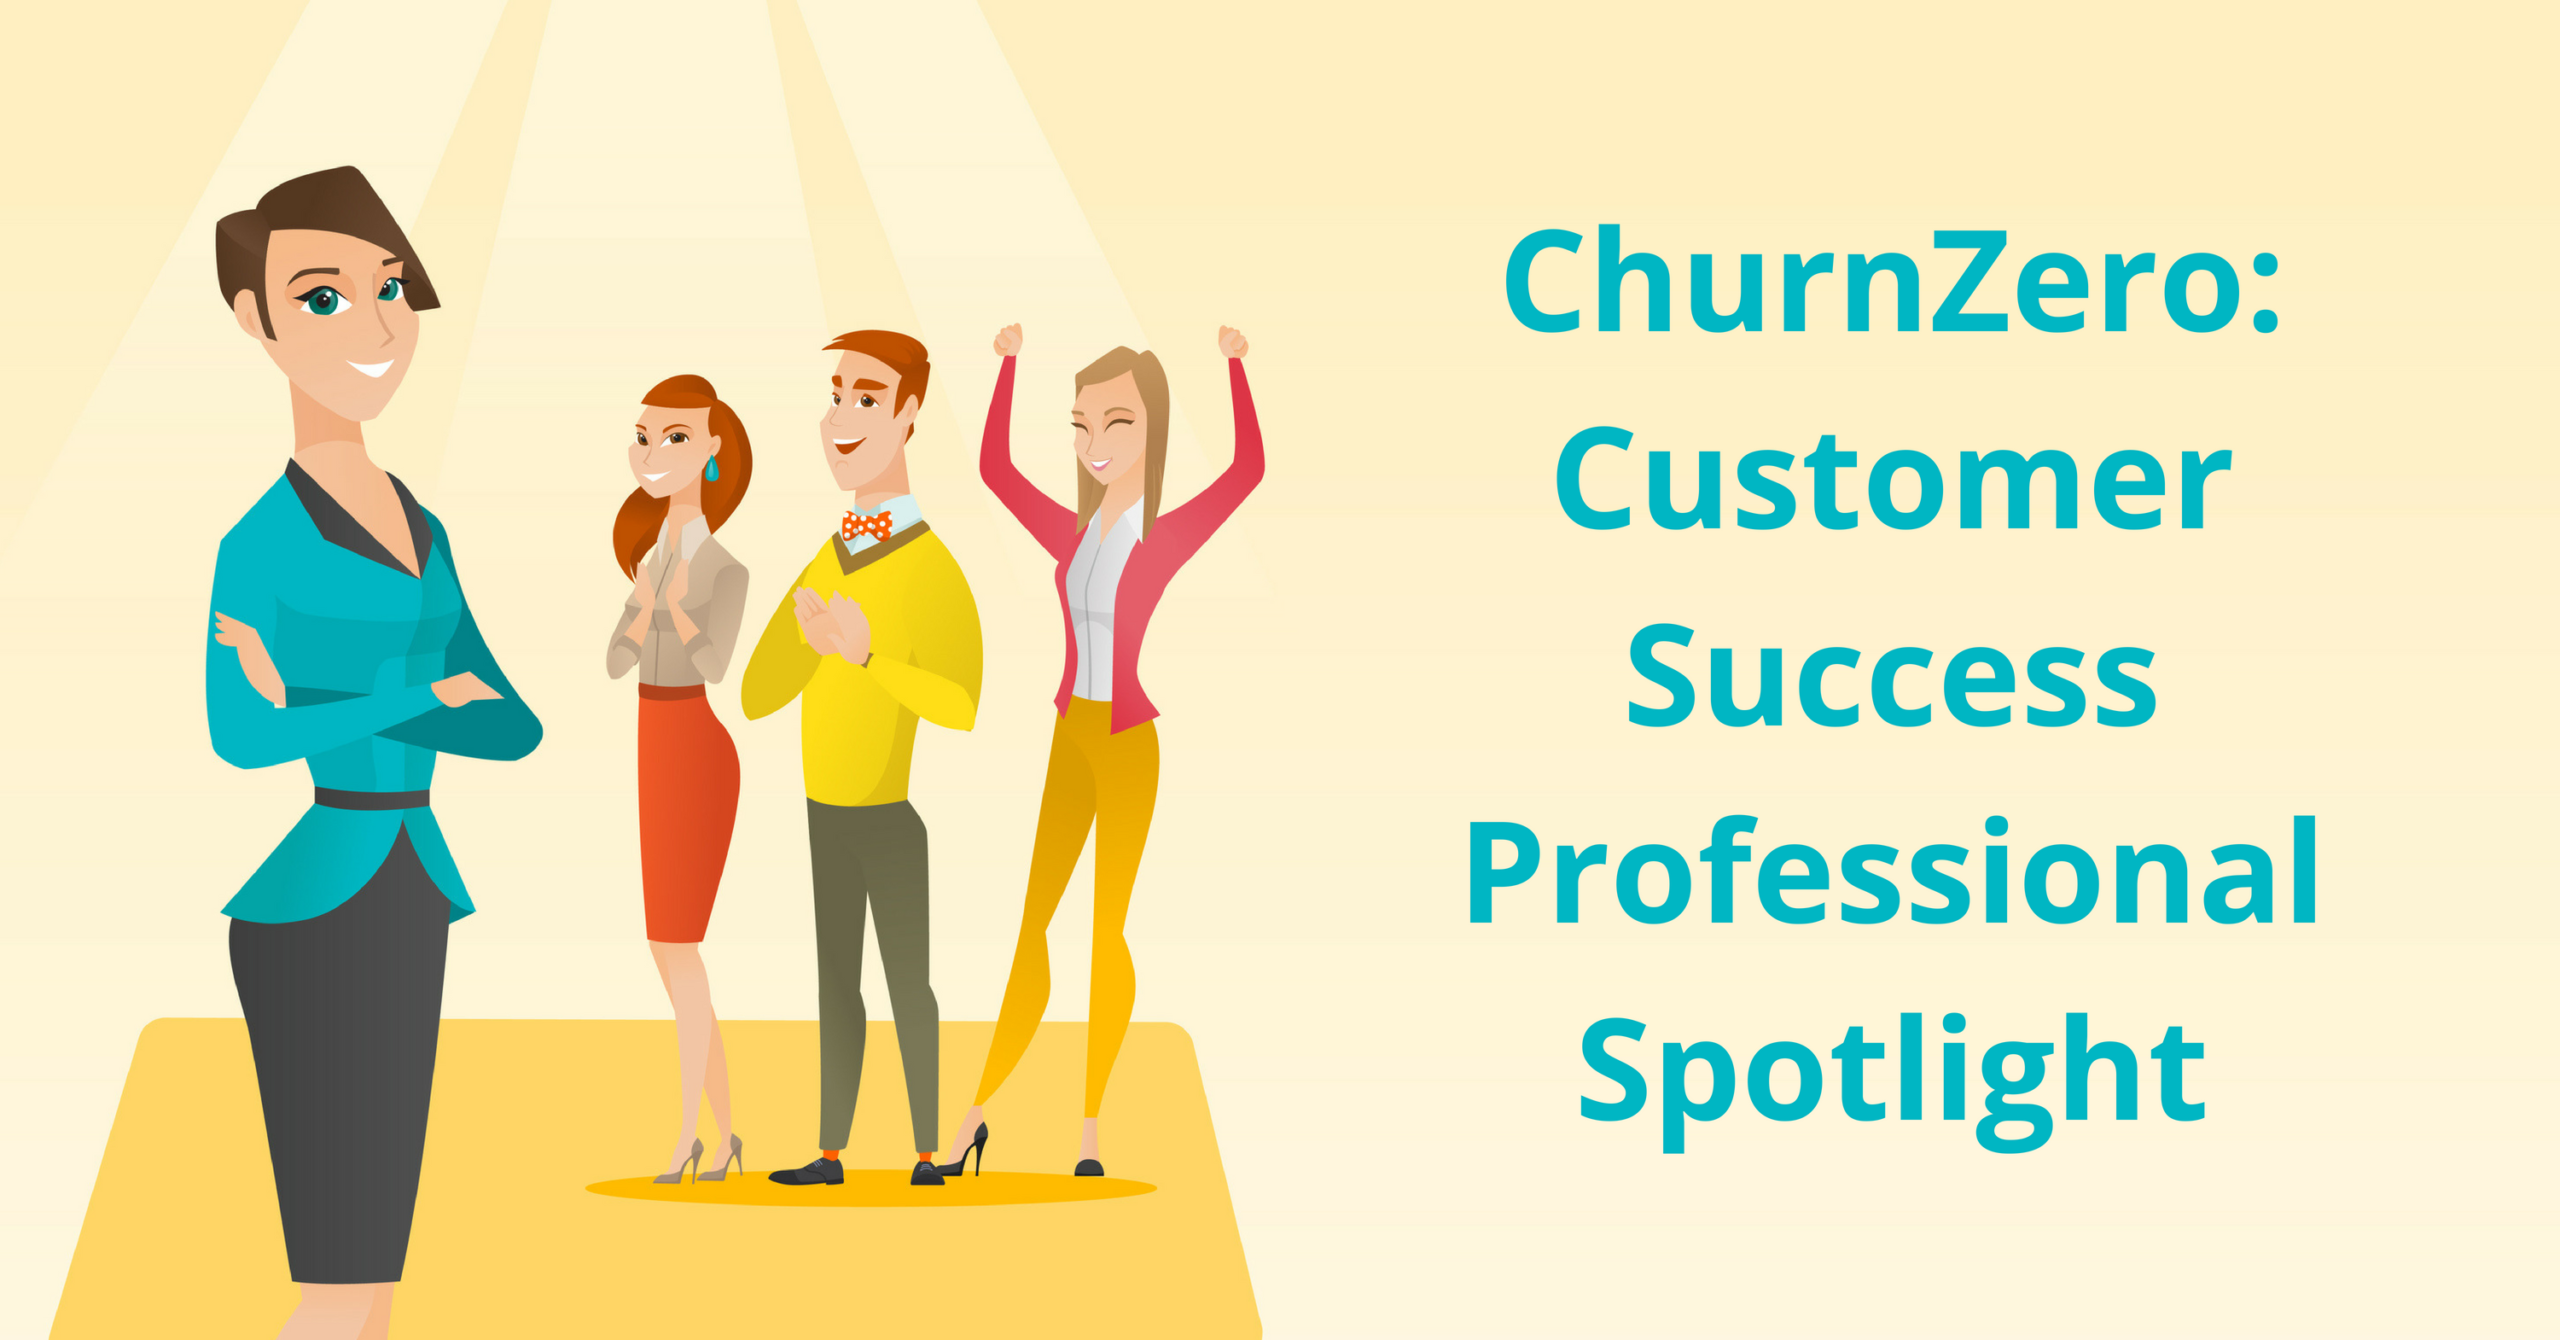 churnzero customer success professional spotlight